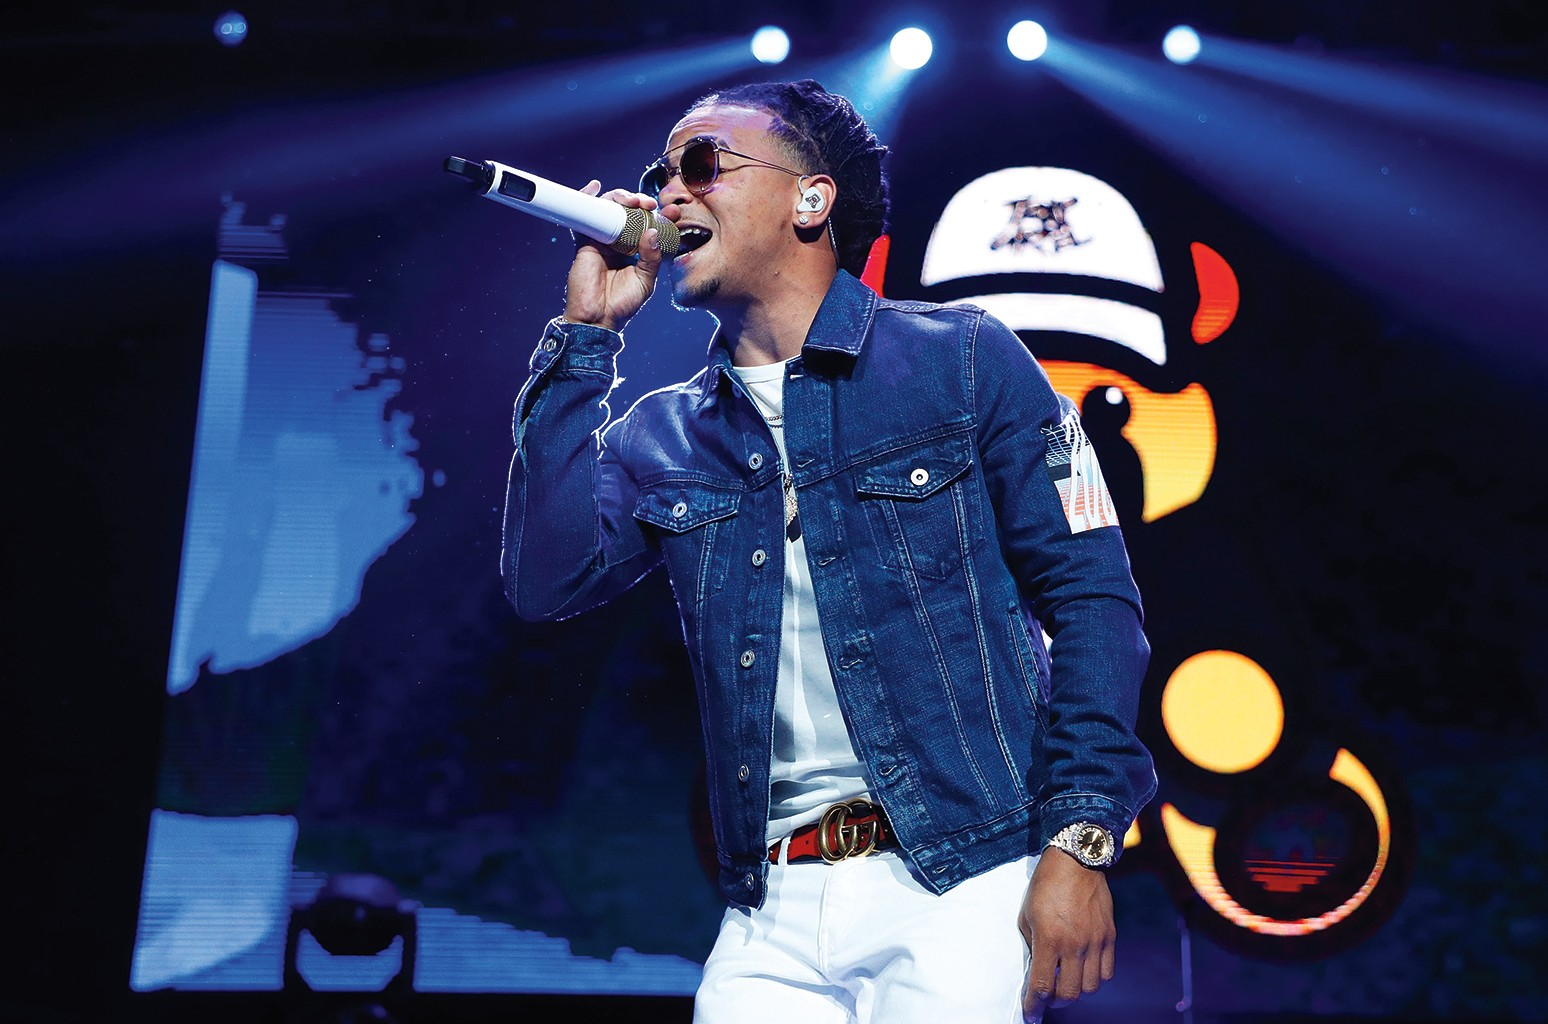 Ozuna performs during Mega 96.3's Calibash 2017 at Staples Center on January 21, 2017 in Los Angeles.